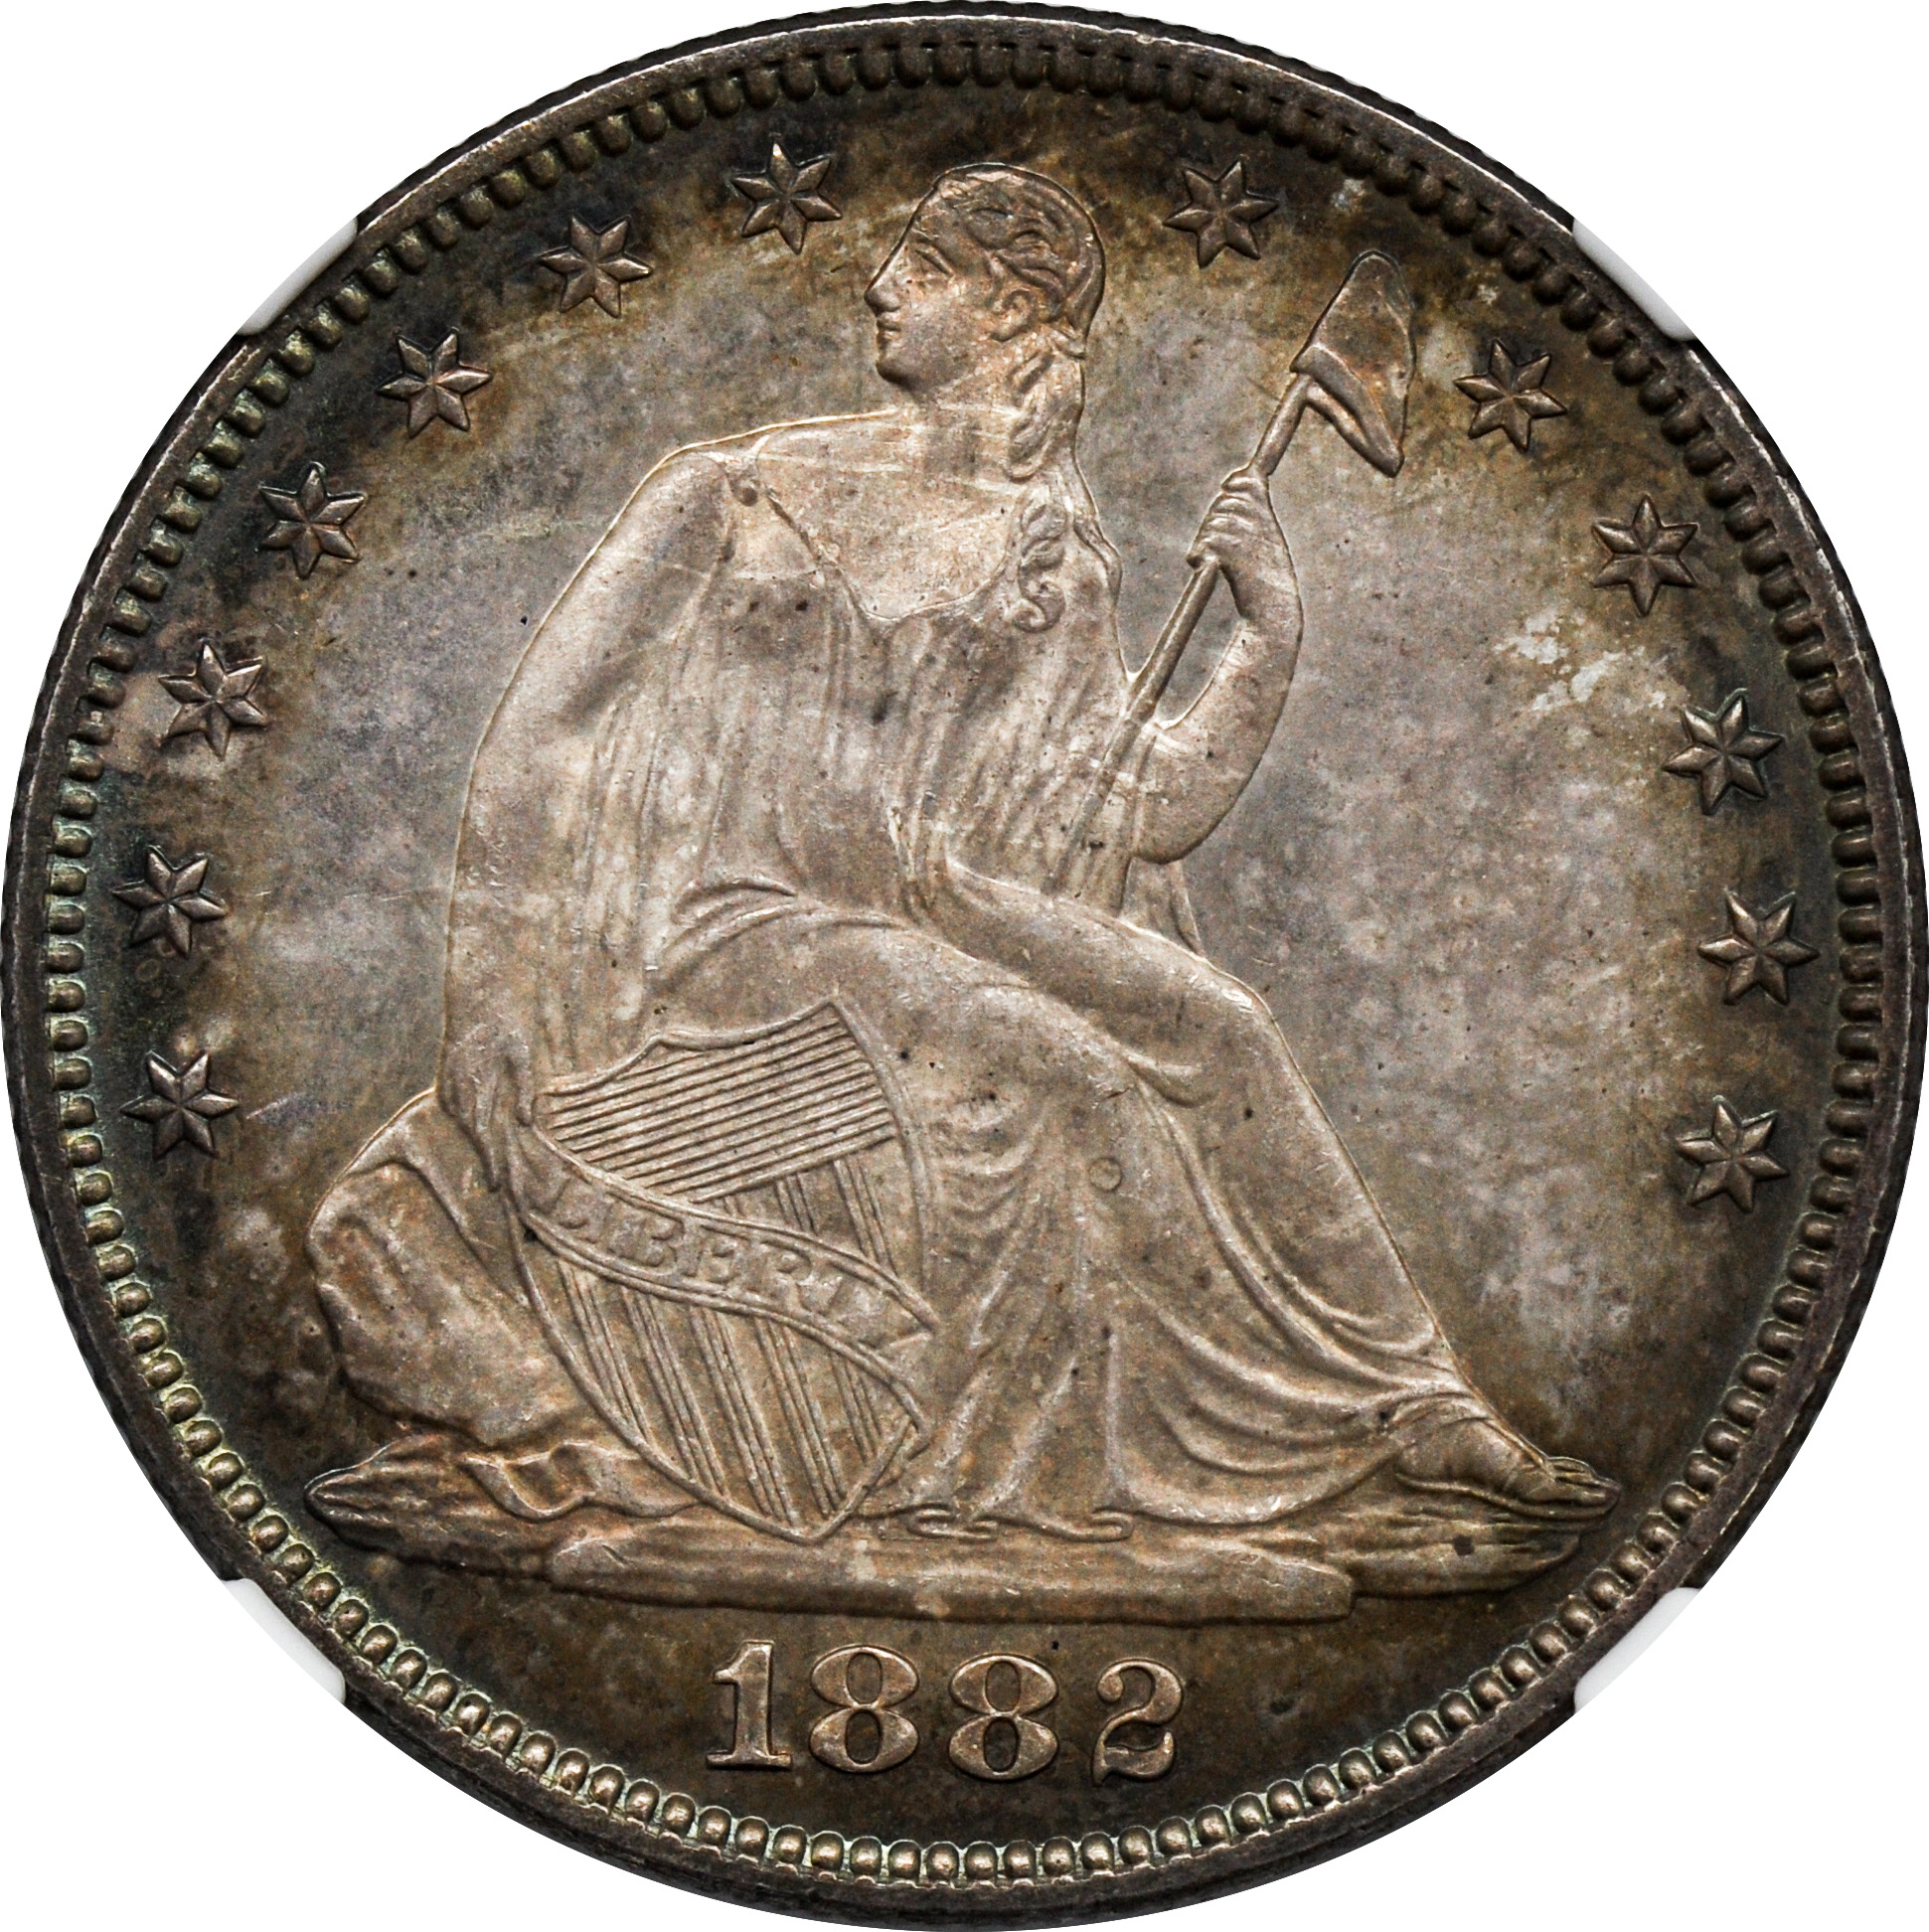 1882 Liberty Seated 50c Rare Coin Wholesalers A S L